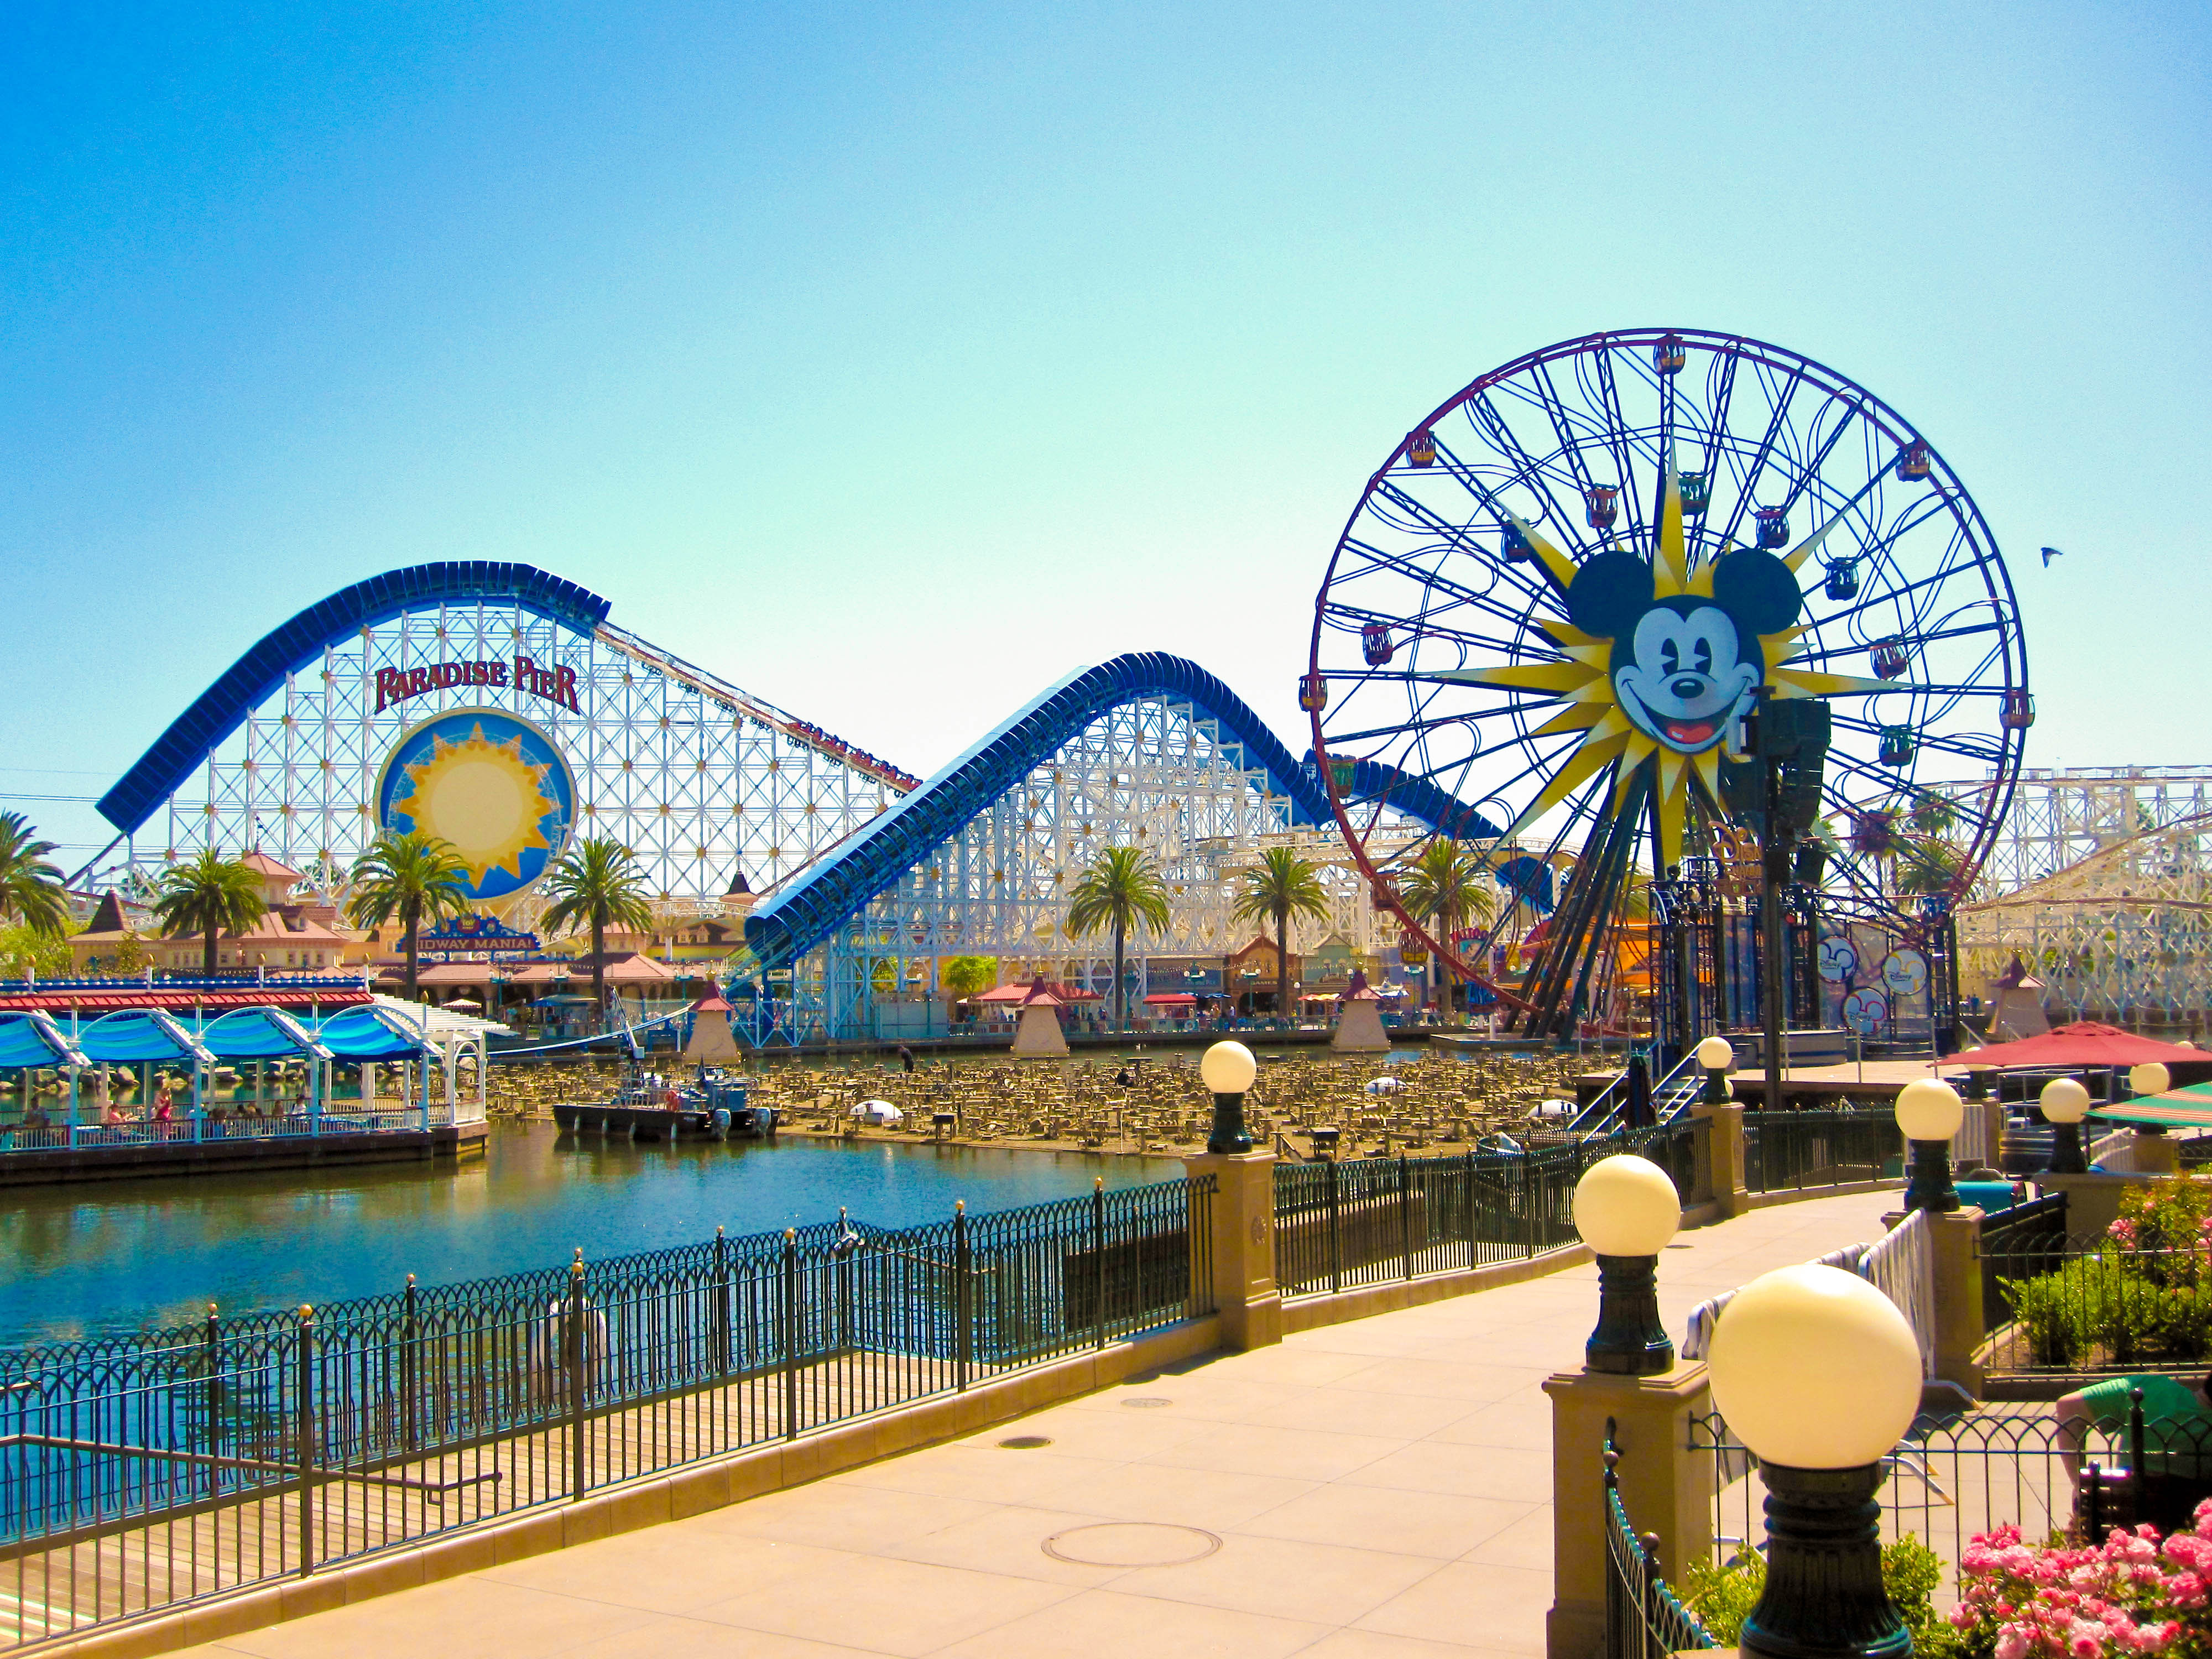 Amusement Park Wallpapers High Quality Download 4000x3000